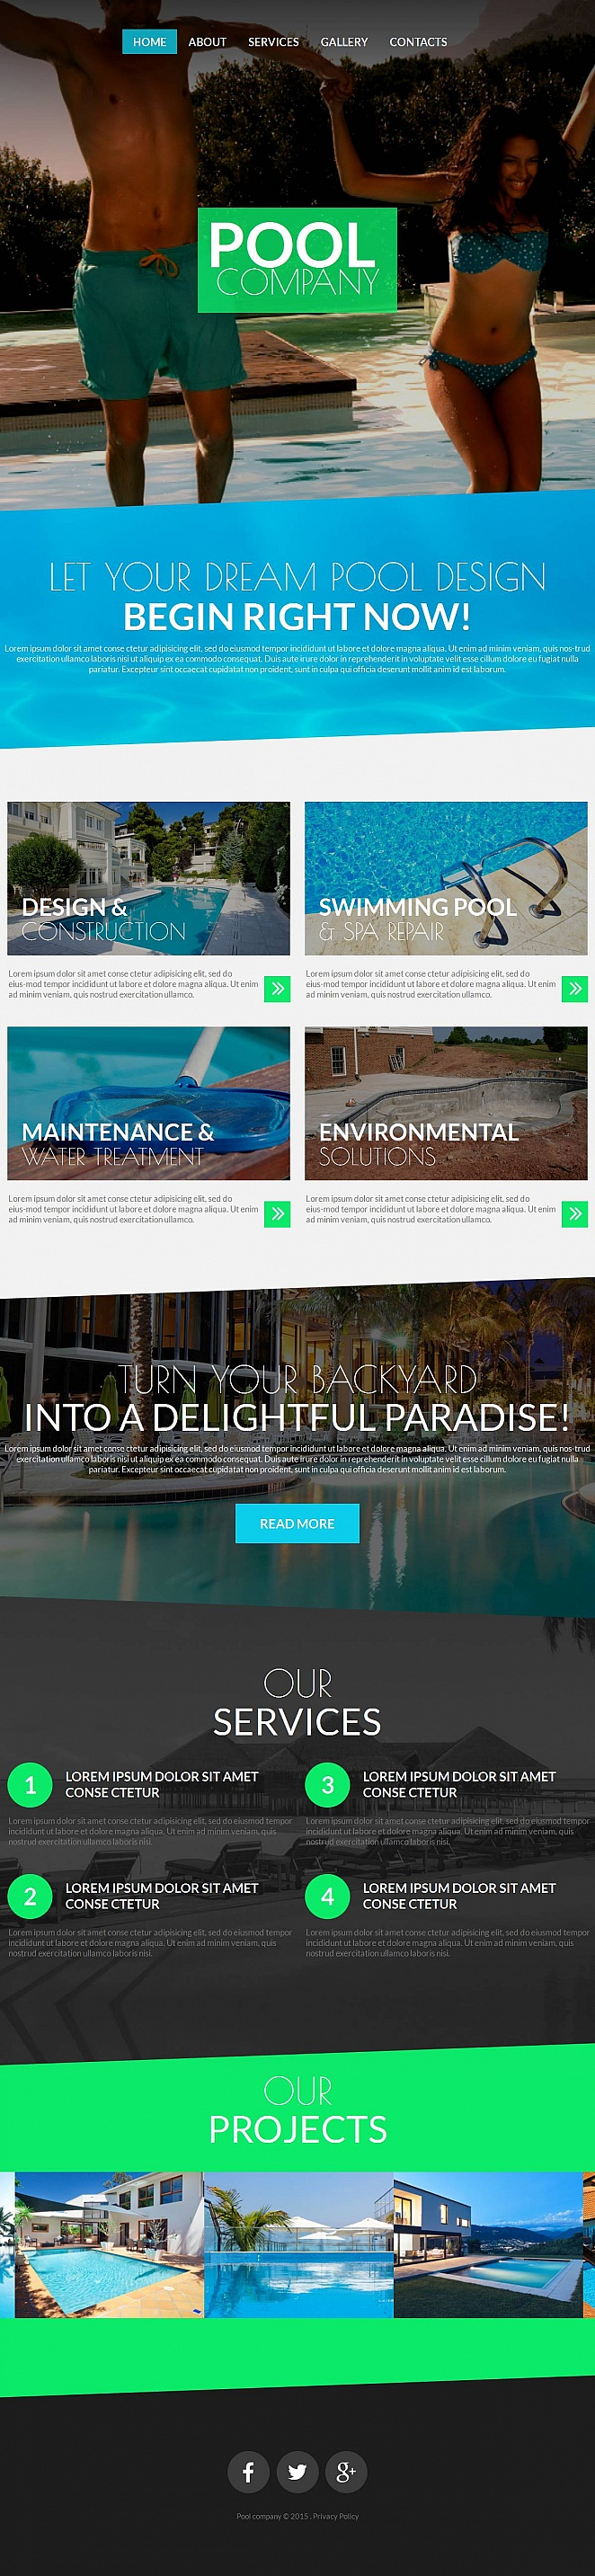 Pool Design Website Template with Large Images - image